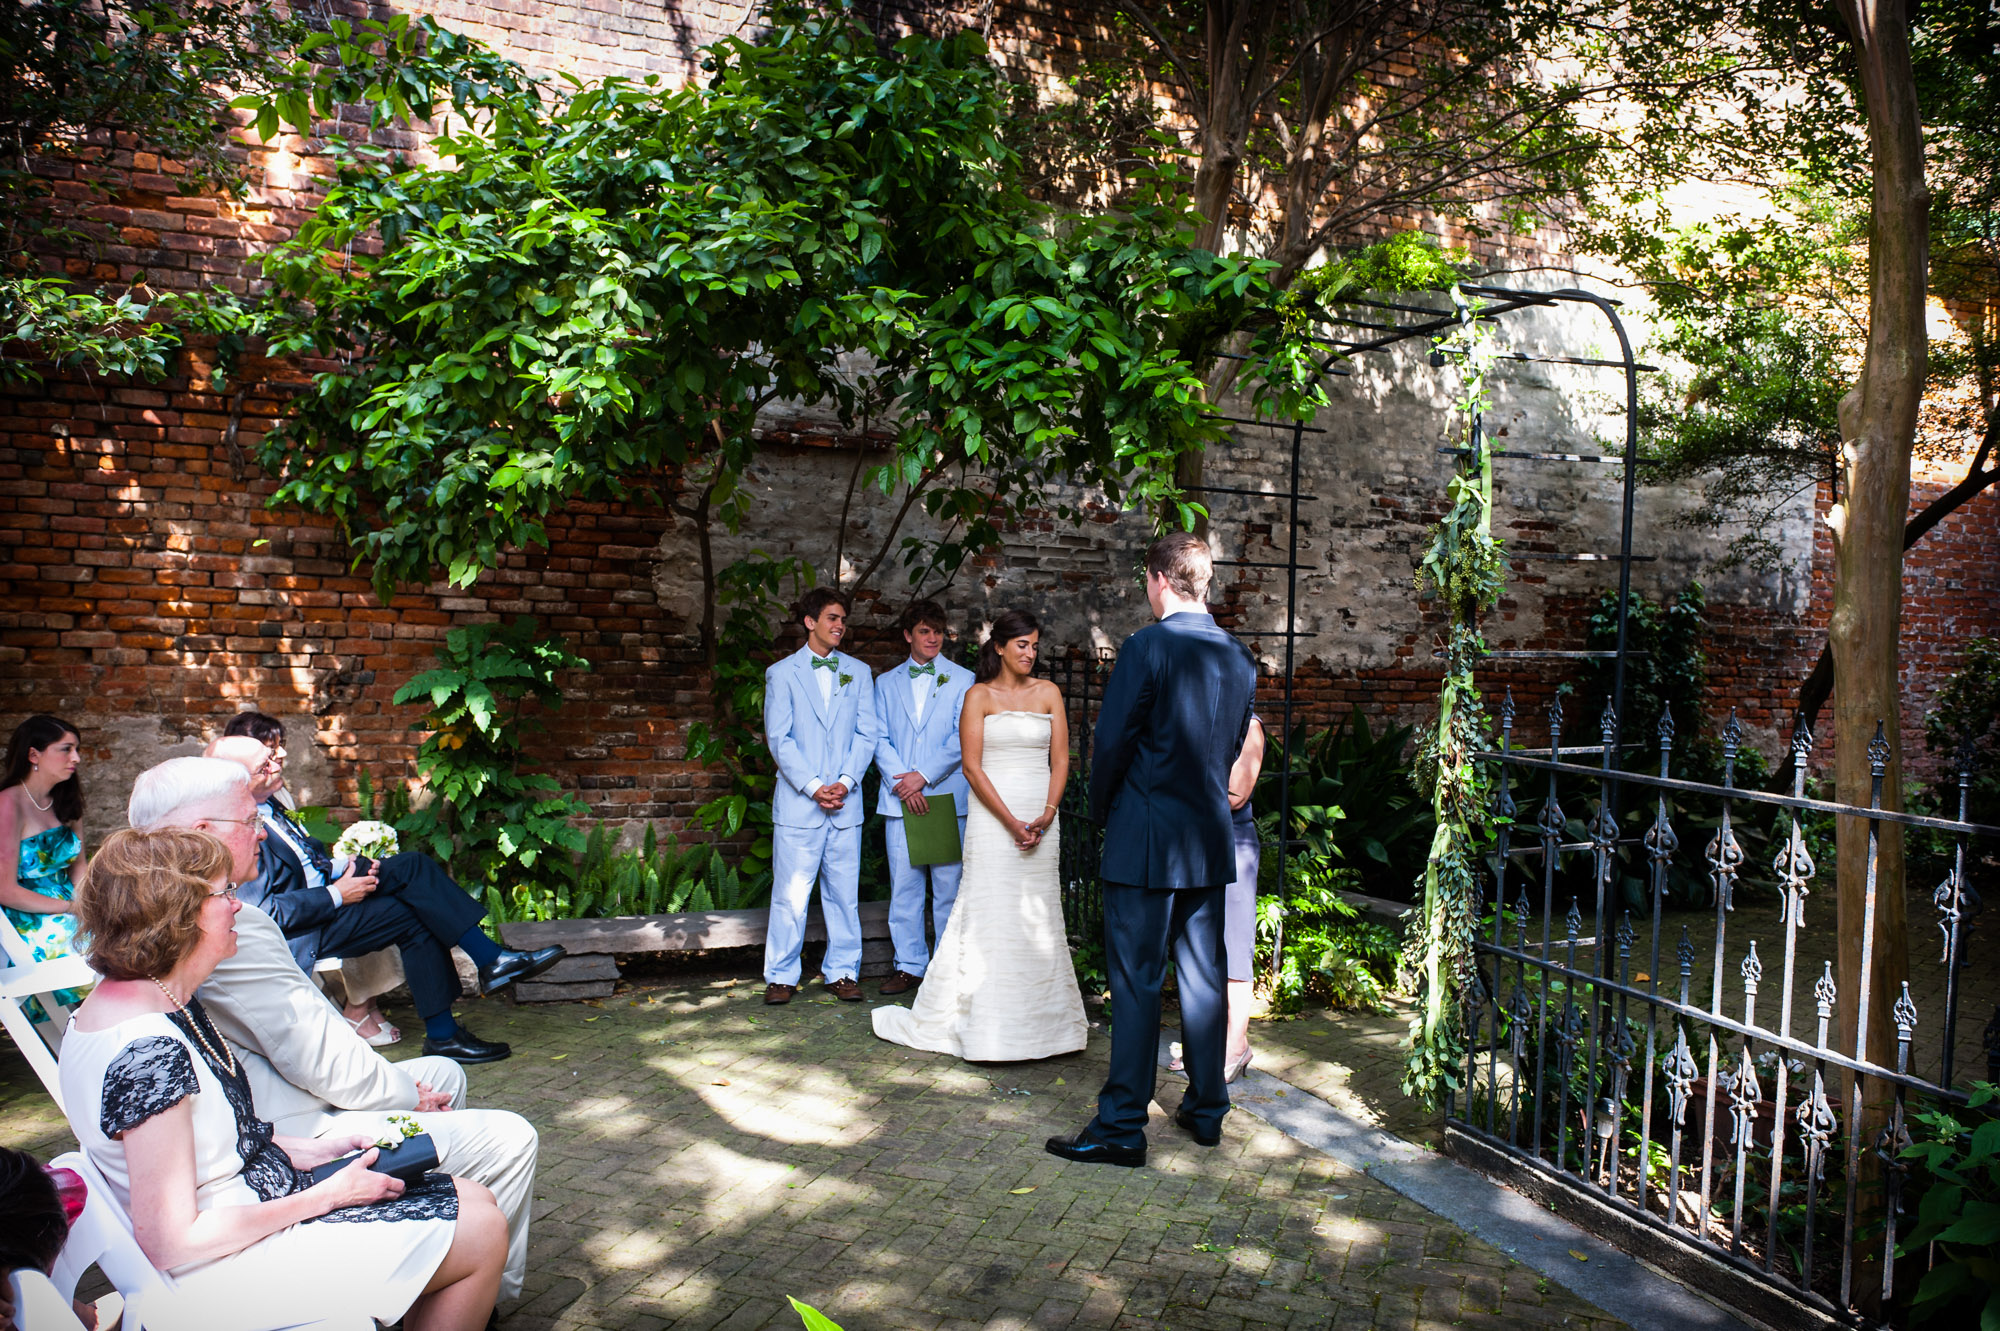 Wedding ceremony at the New Orleans Pharmacy Museum, photographed by Scott Myers